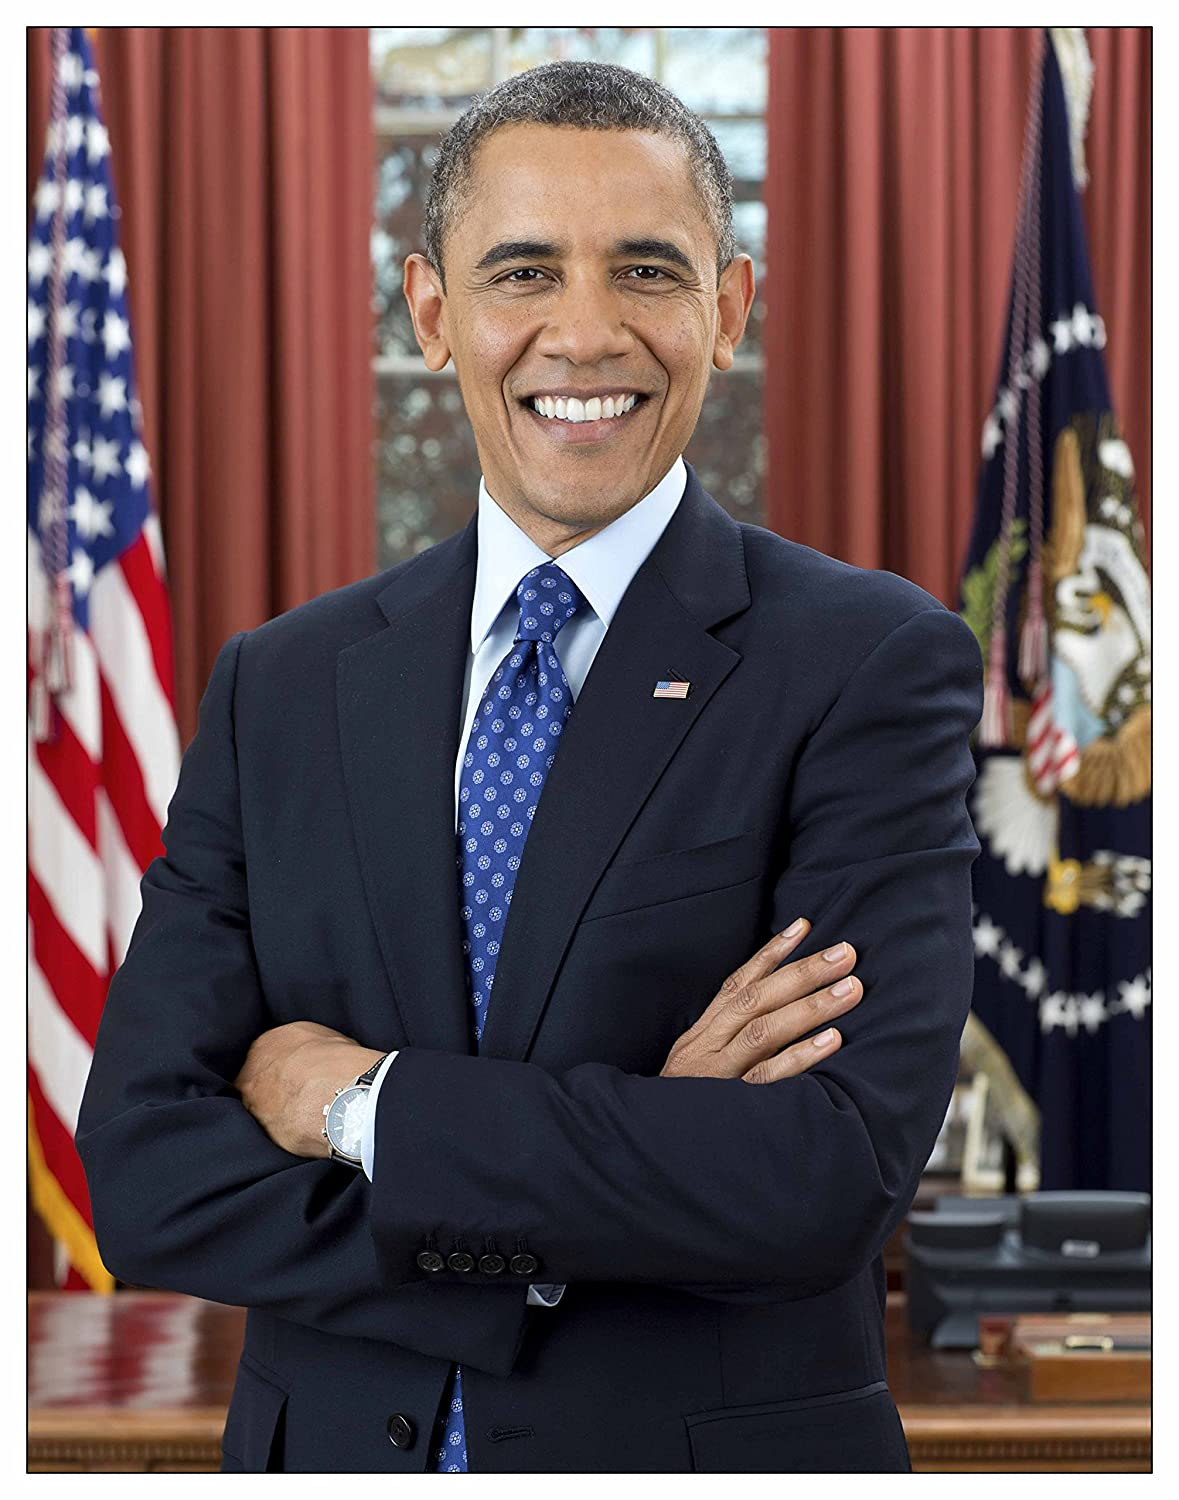 In the Oval Office Wall Art Print ~ BARACK OBAMA Official Presidential Photo 8/×10 print